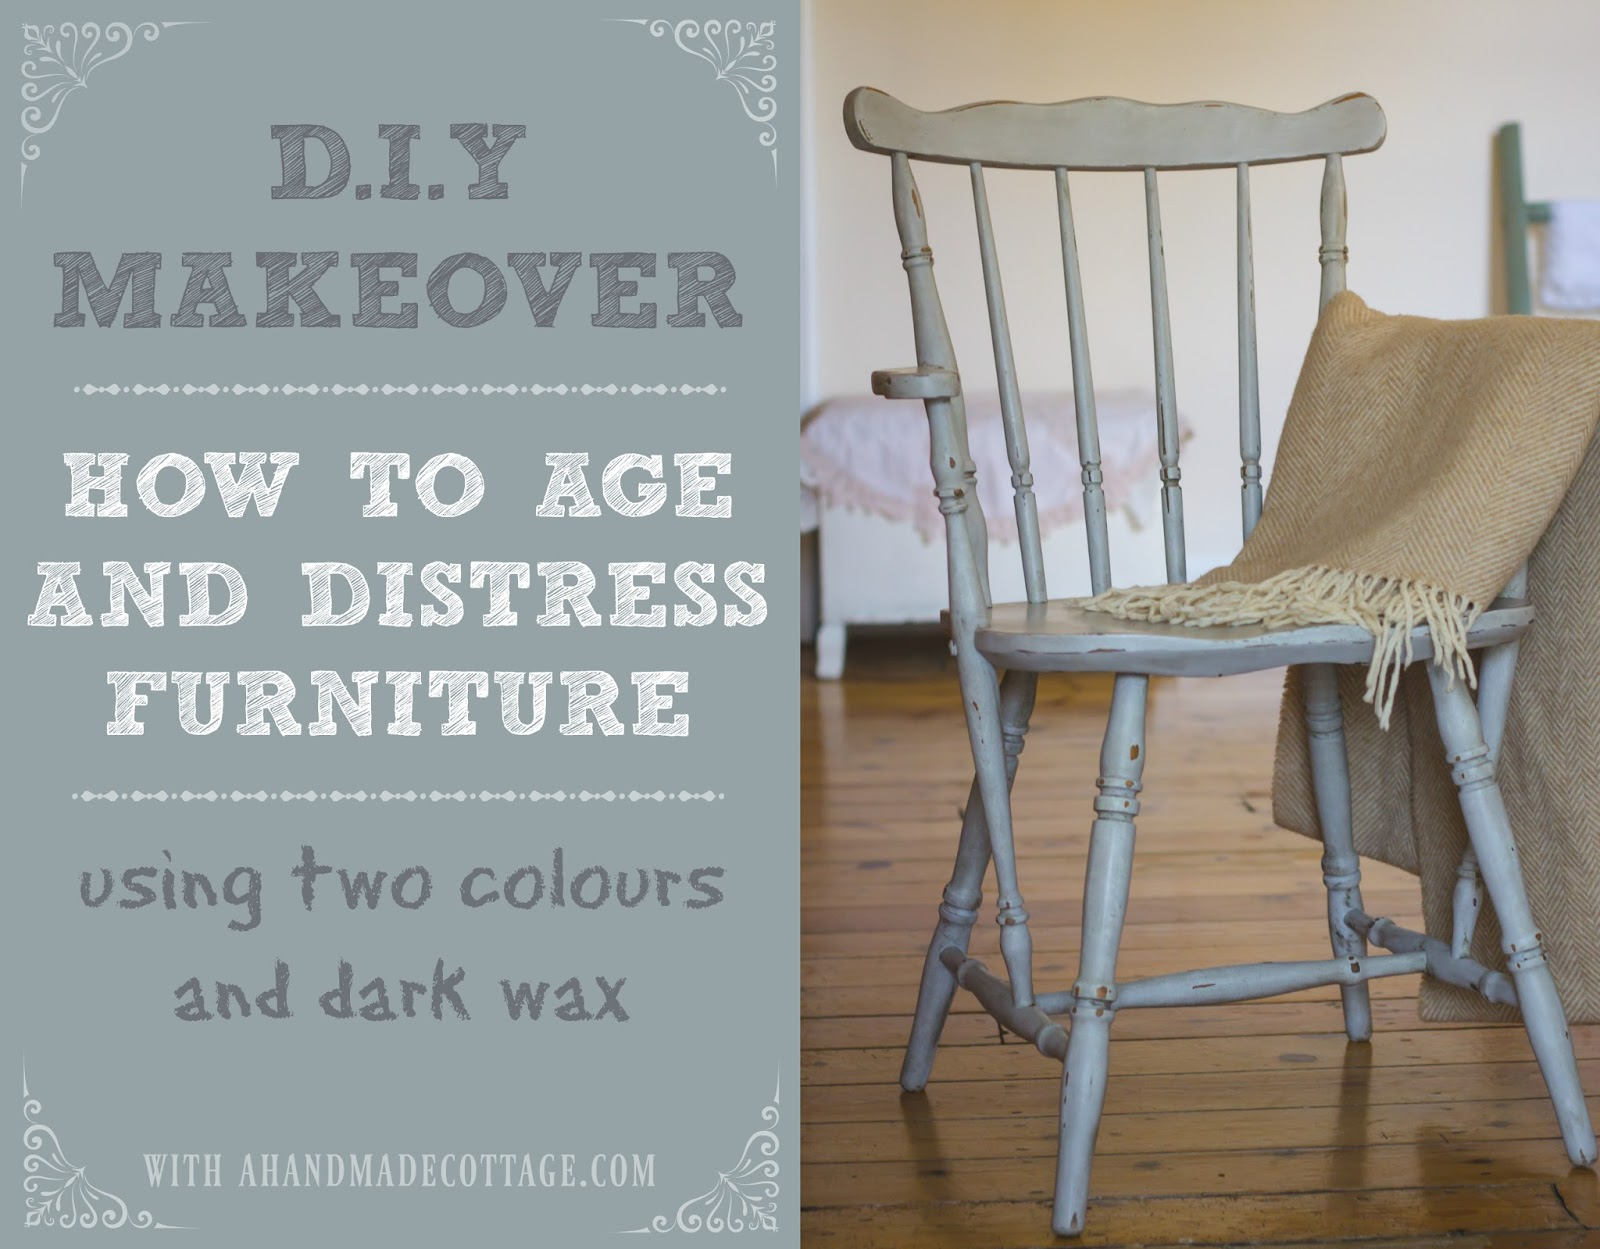 A handmade cottage: How to age, antique and distress ...